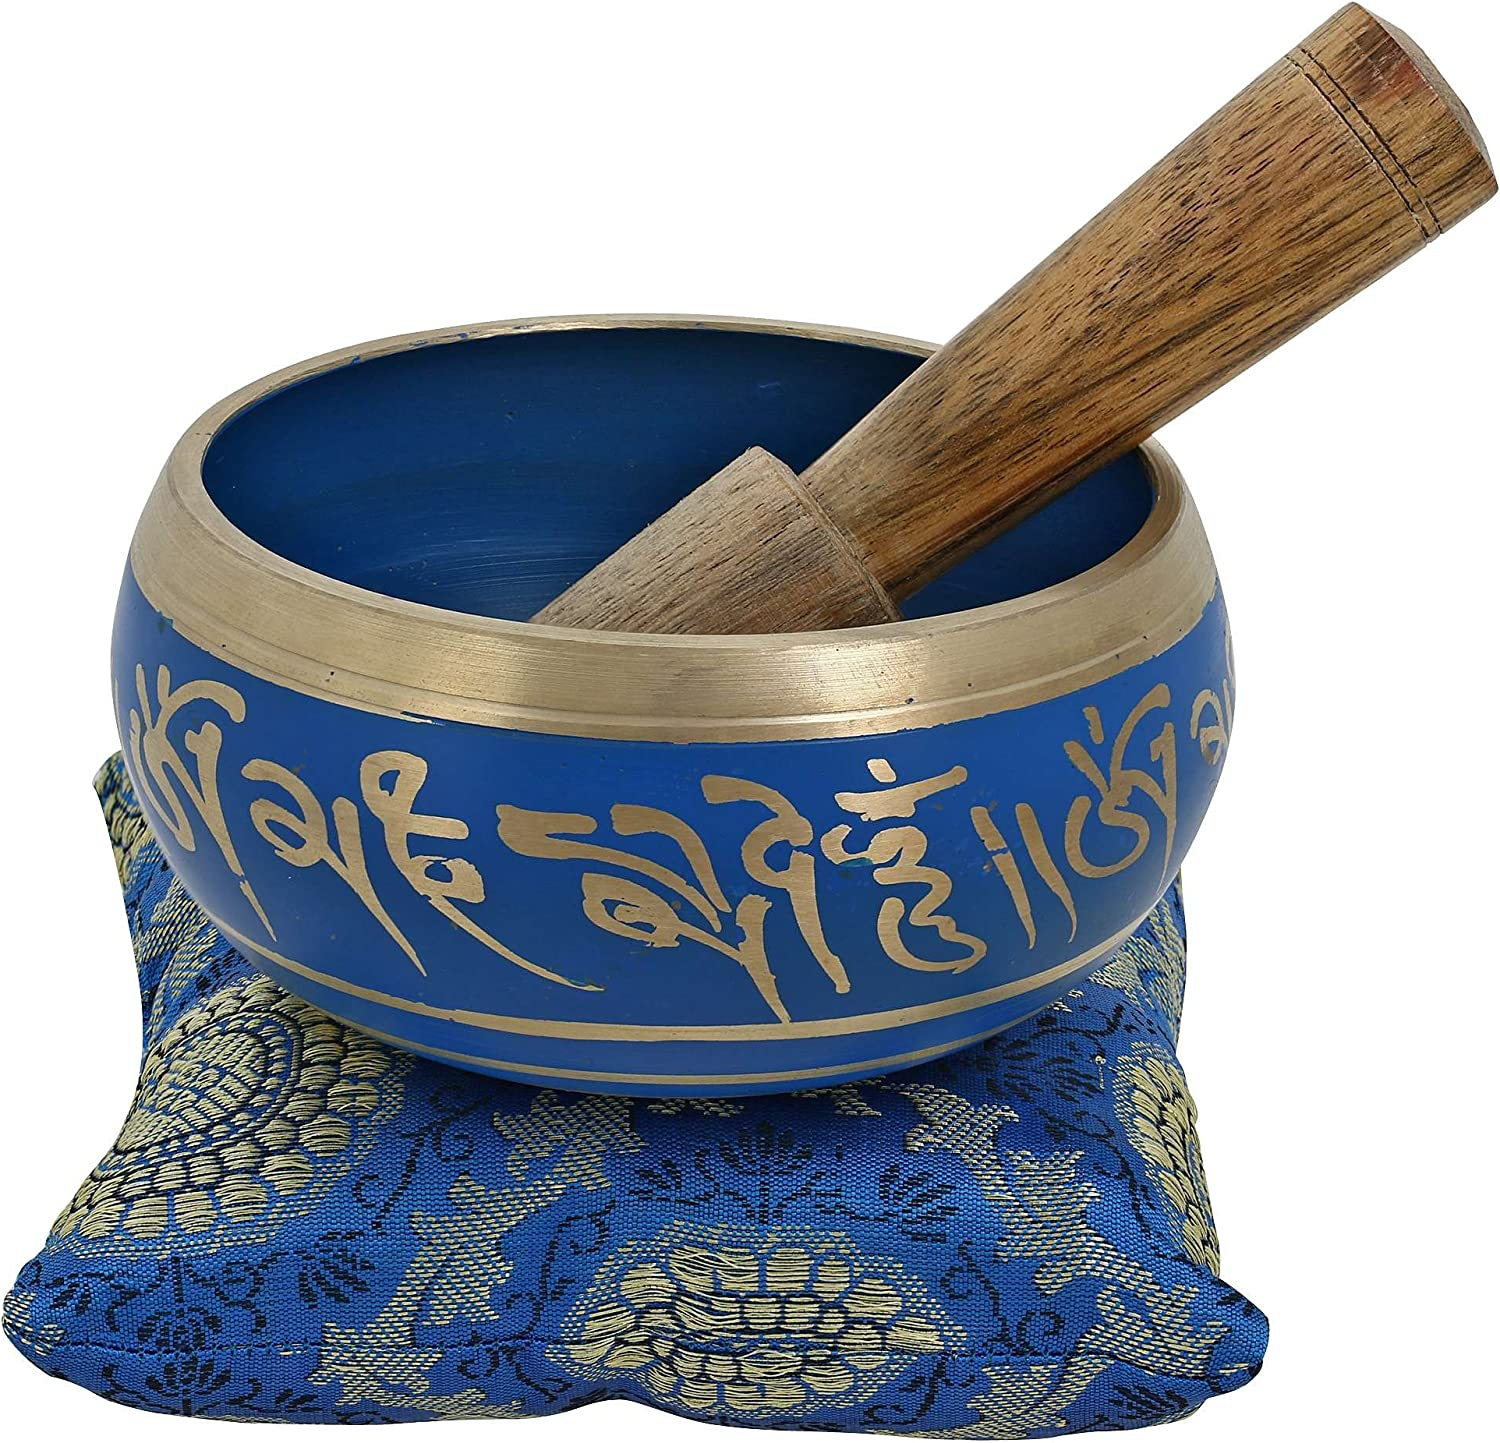 4 Inches seits Painted Metal Tibetan Buddhist Singing Bowl Musical Instrument für Meditation mit Stick und Cushion